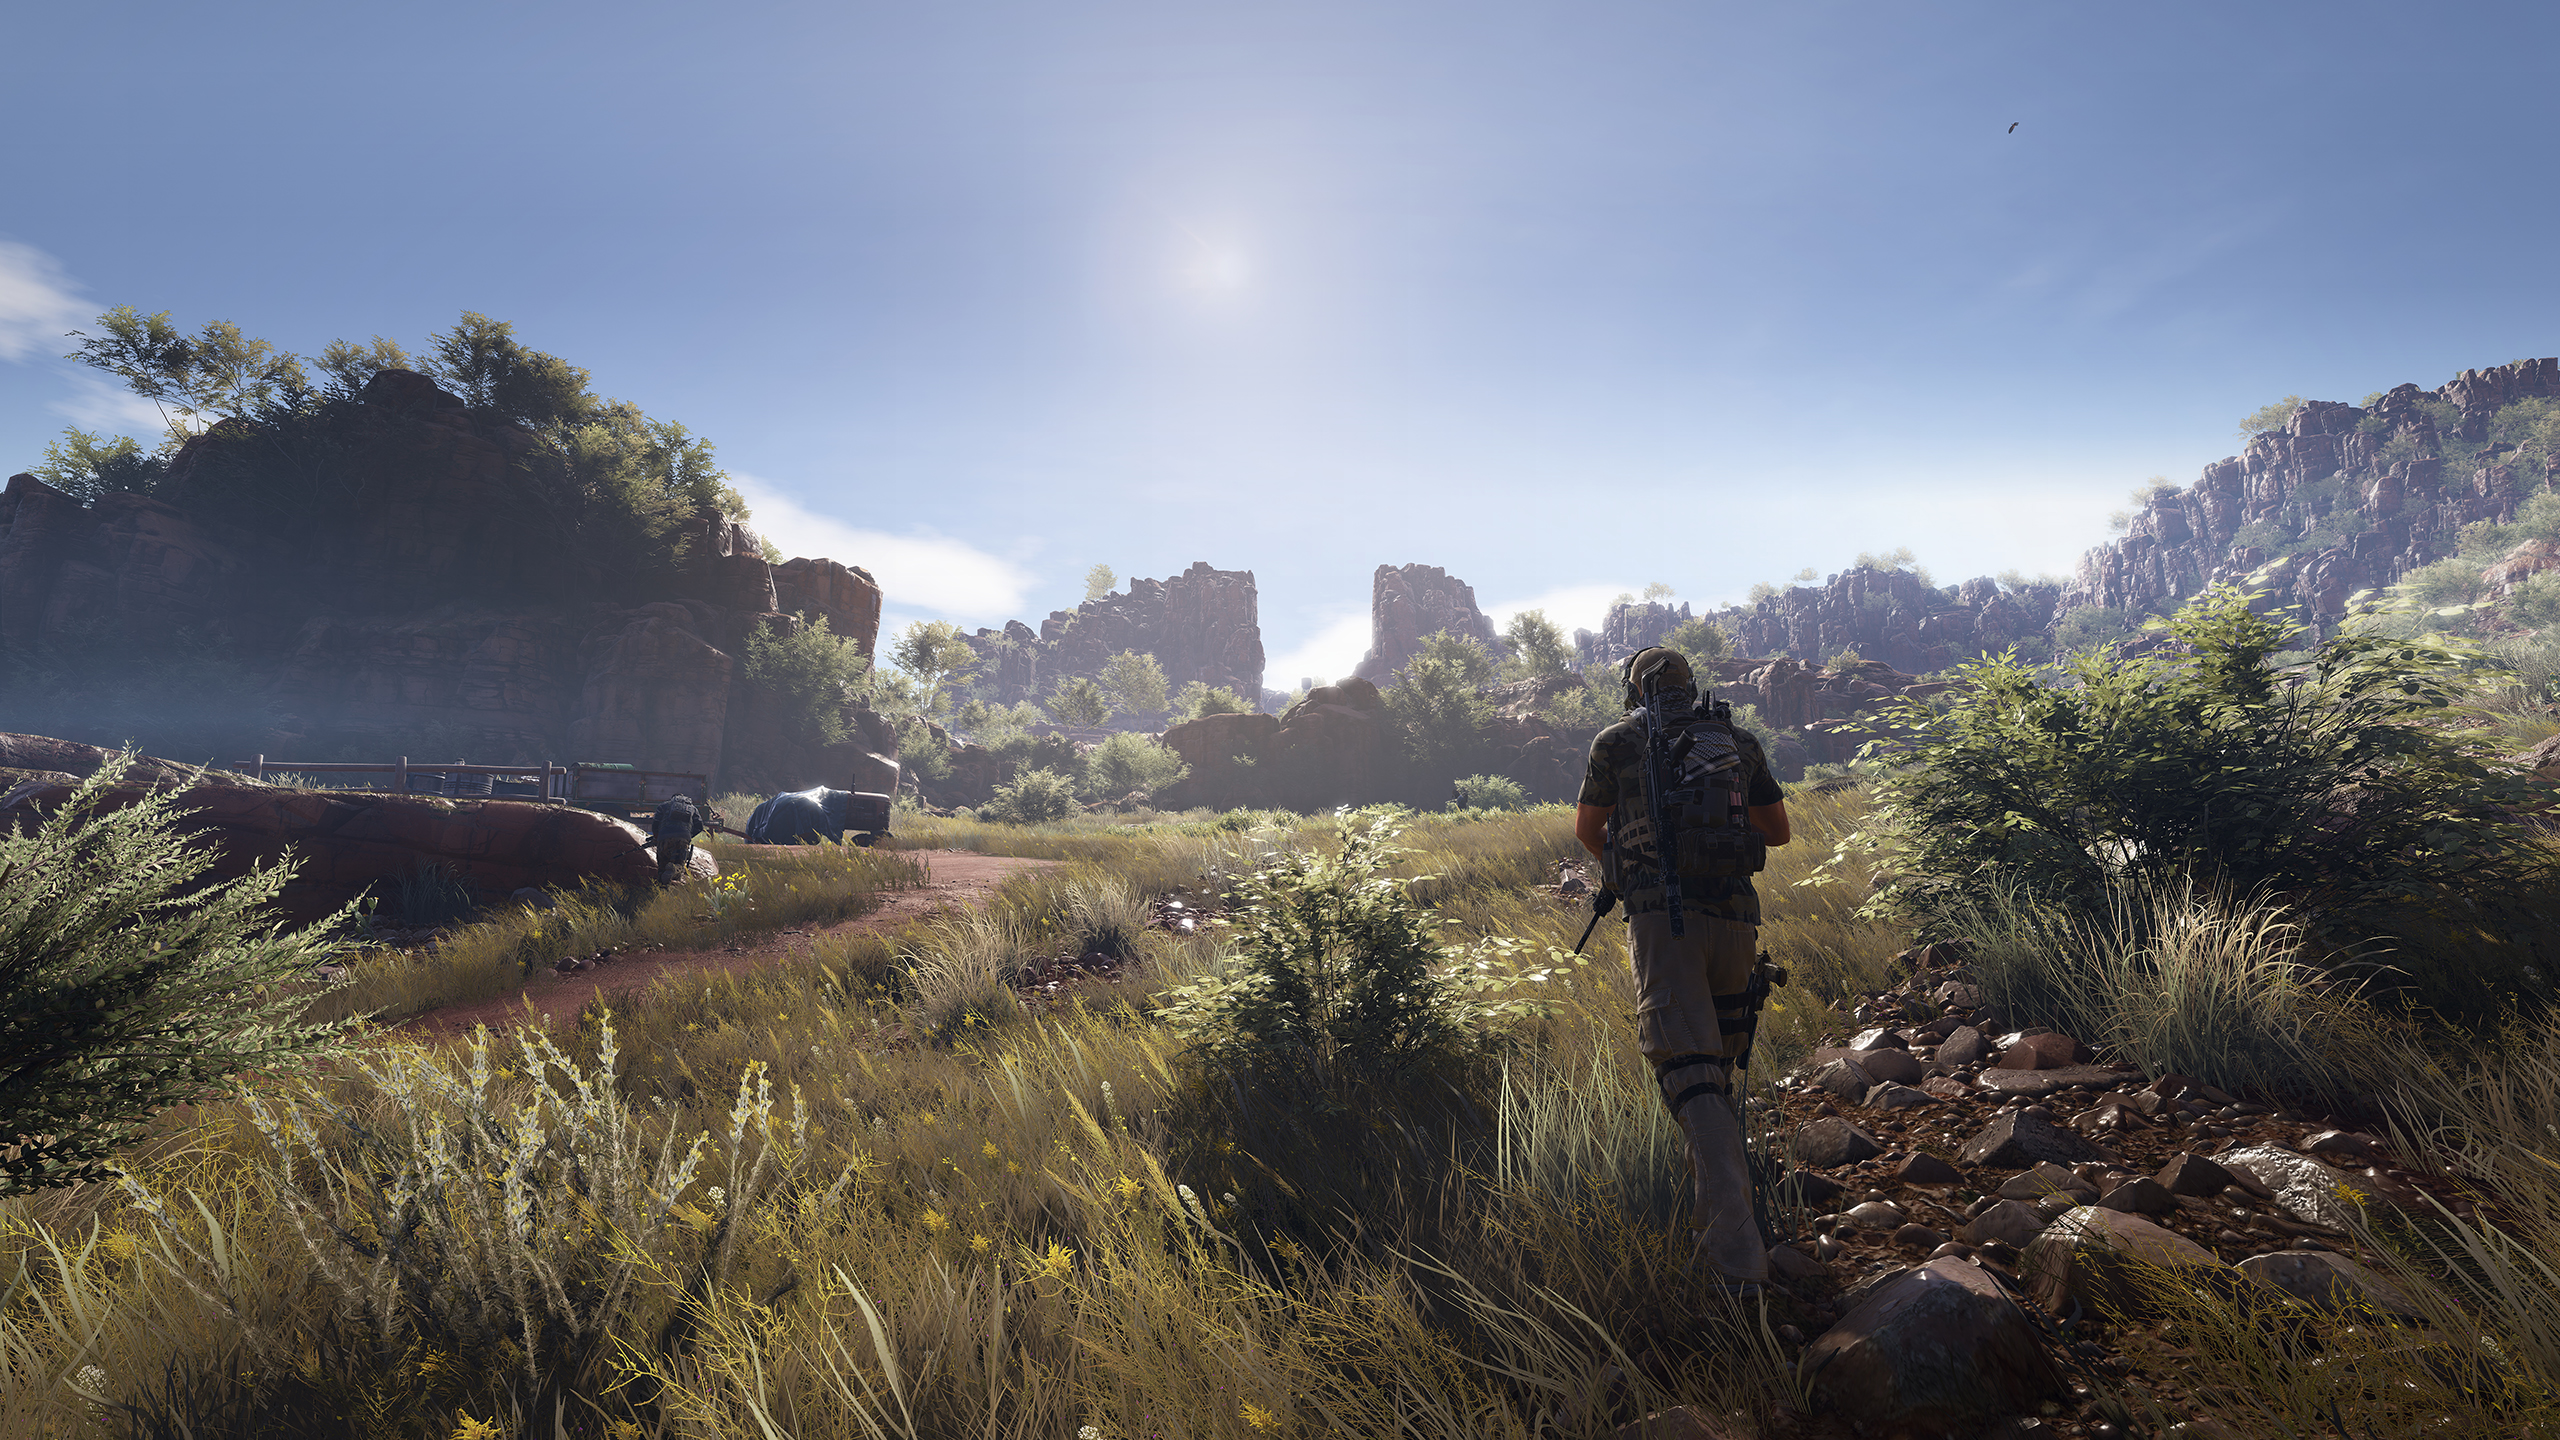 This Ghost Recon Wildlands Video Shows The Game Running In 4k At